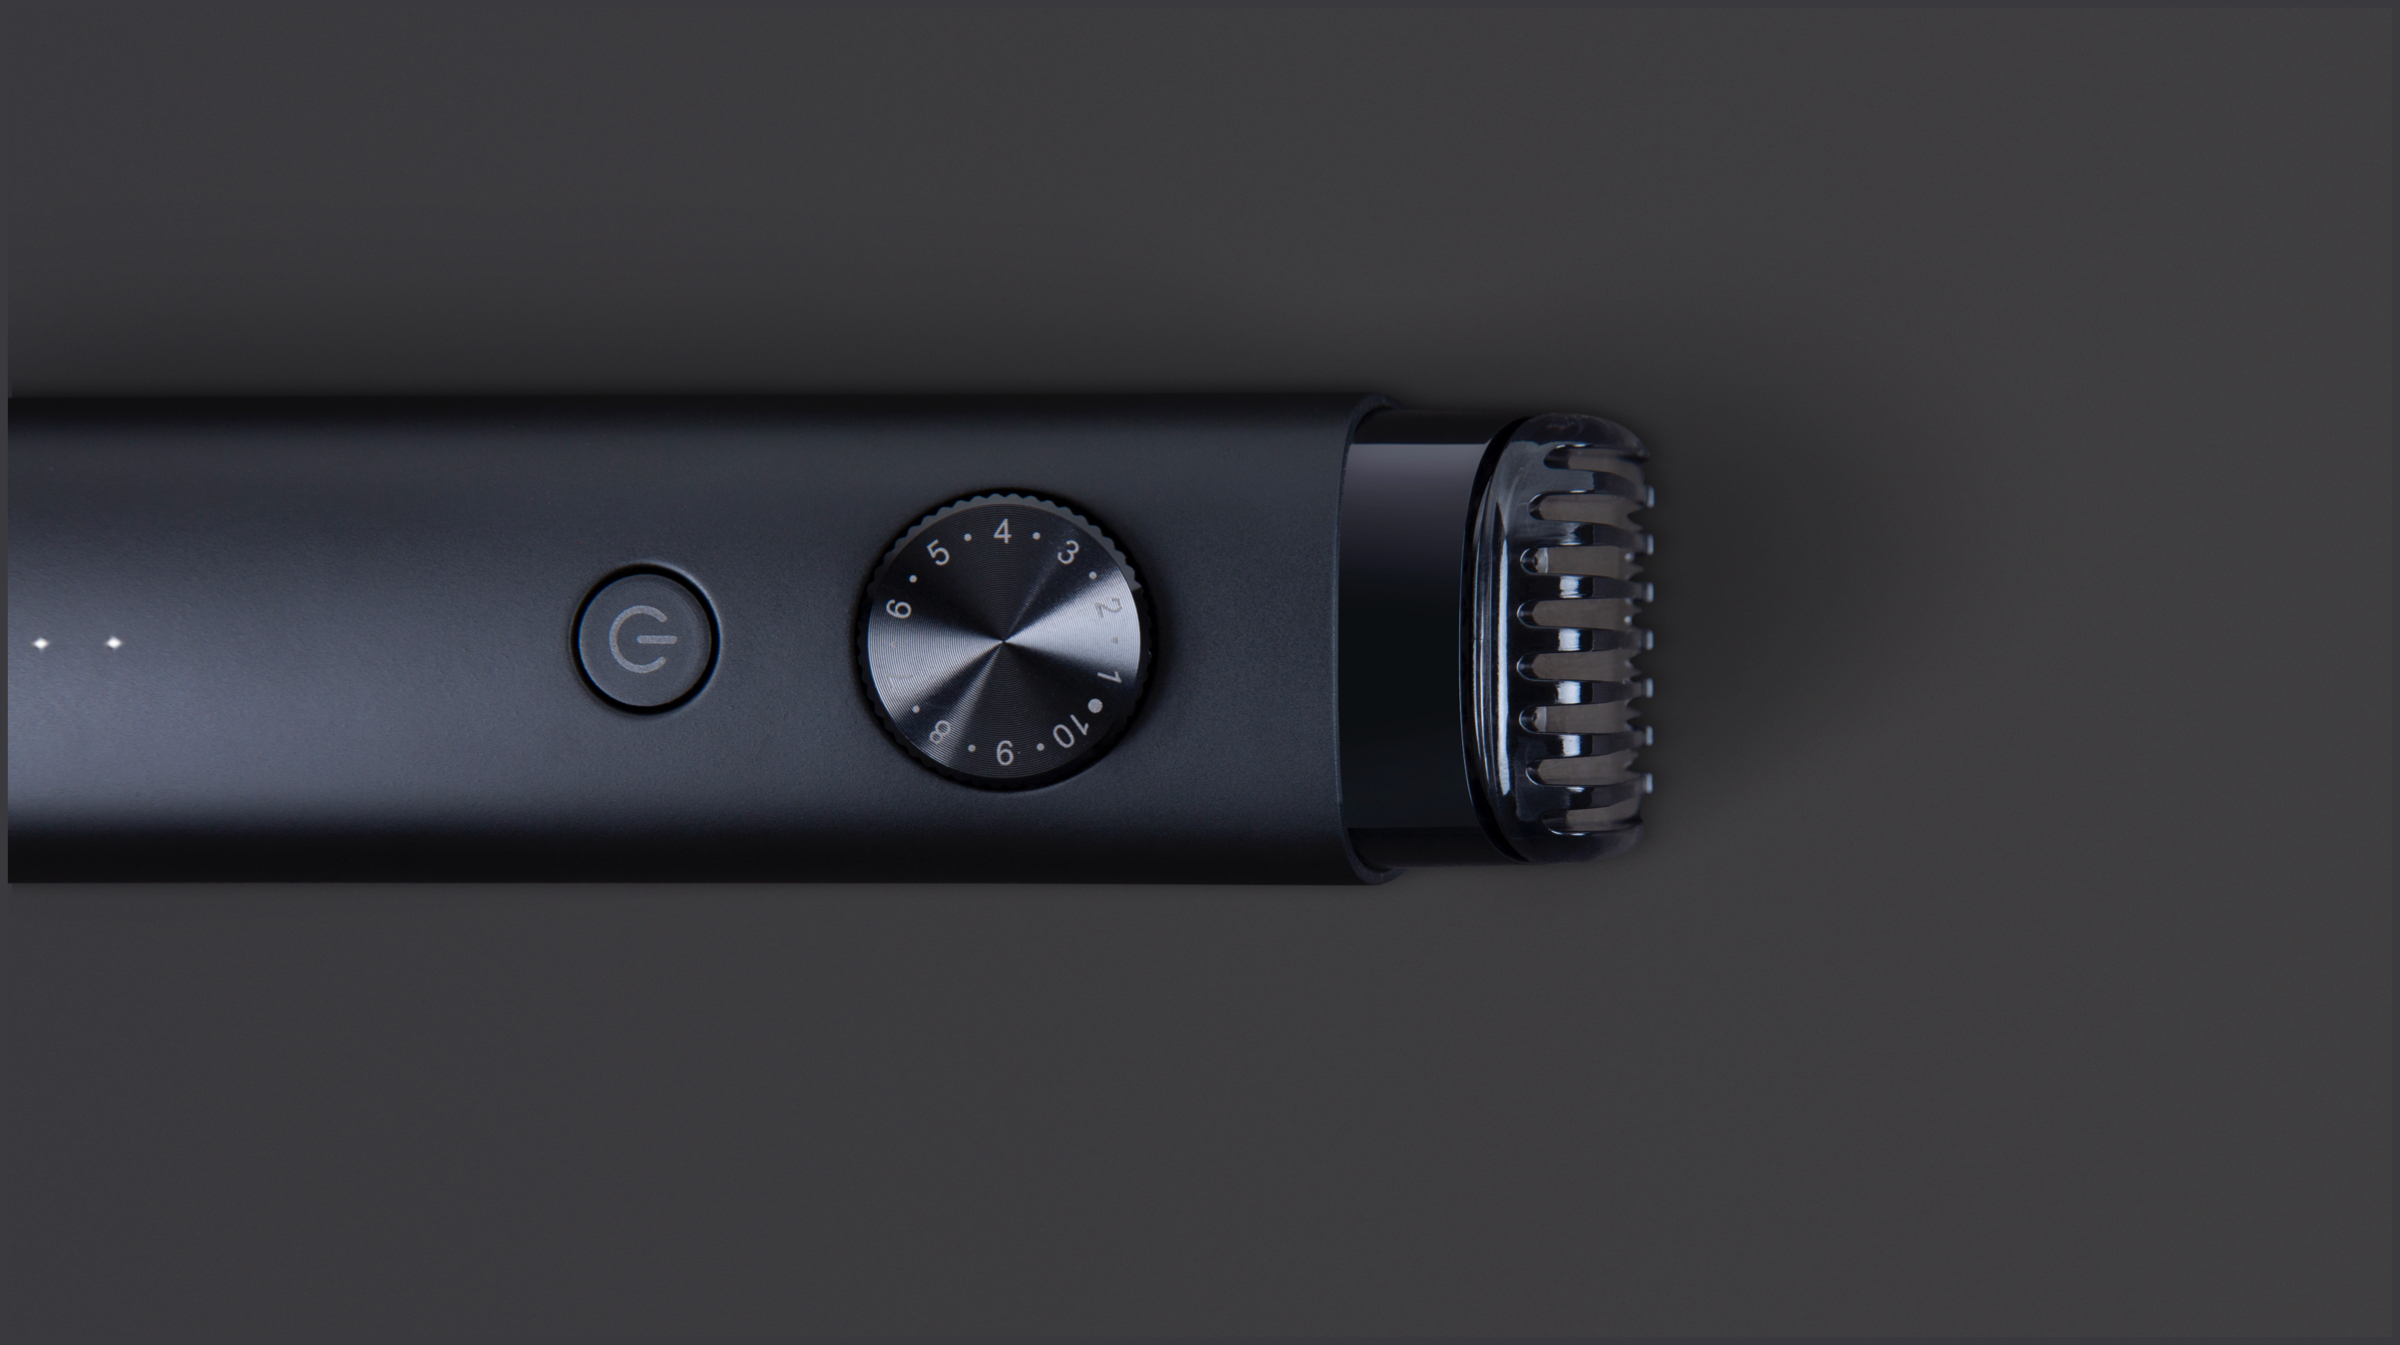 Mi Beard Trimmer Launched in India, Price, Features | iGyaan Network